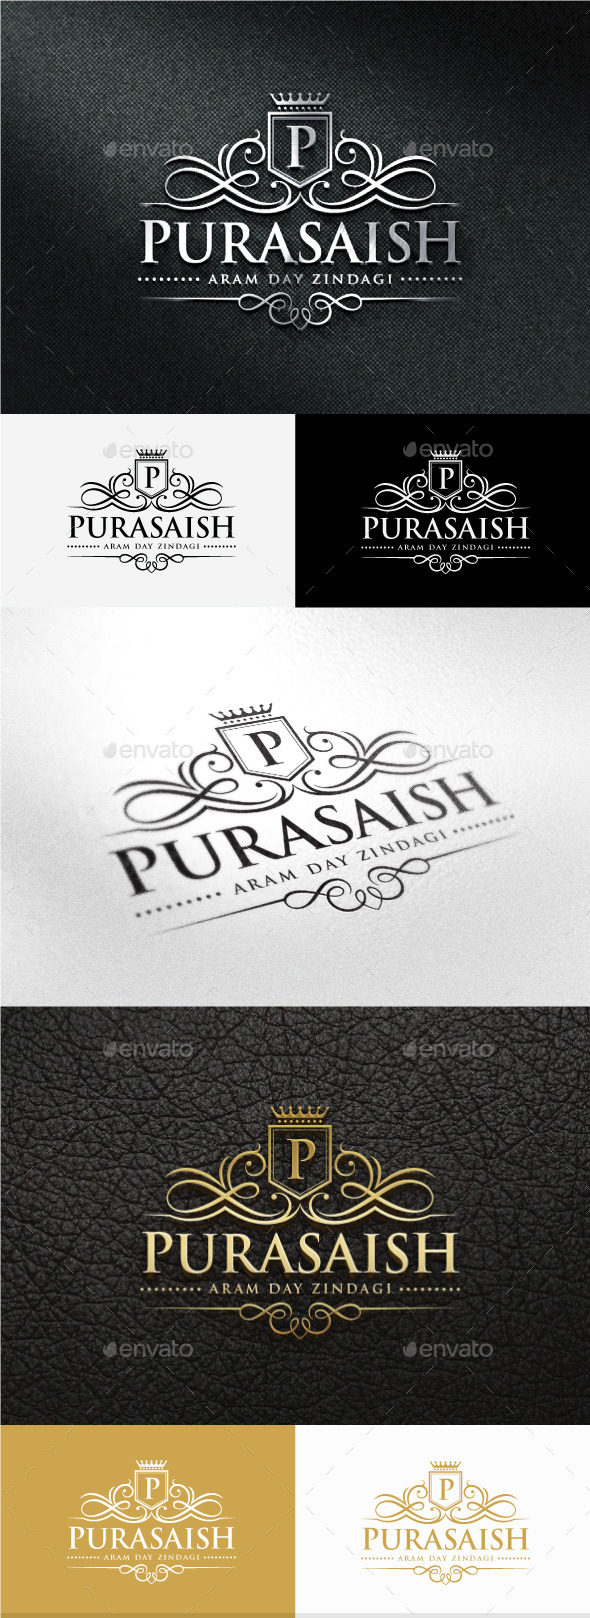 GraphicRiver Purasaish Logo 10696060